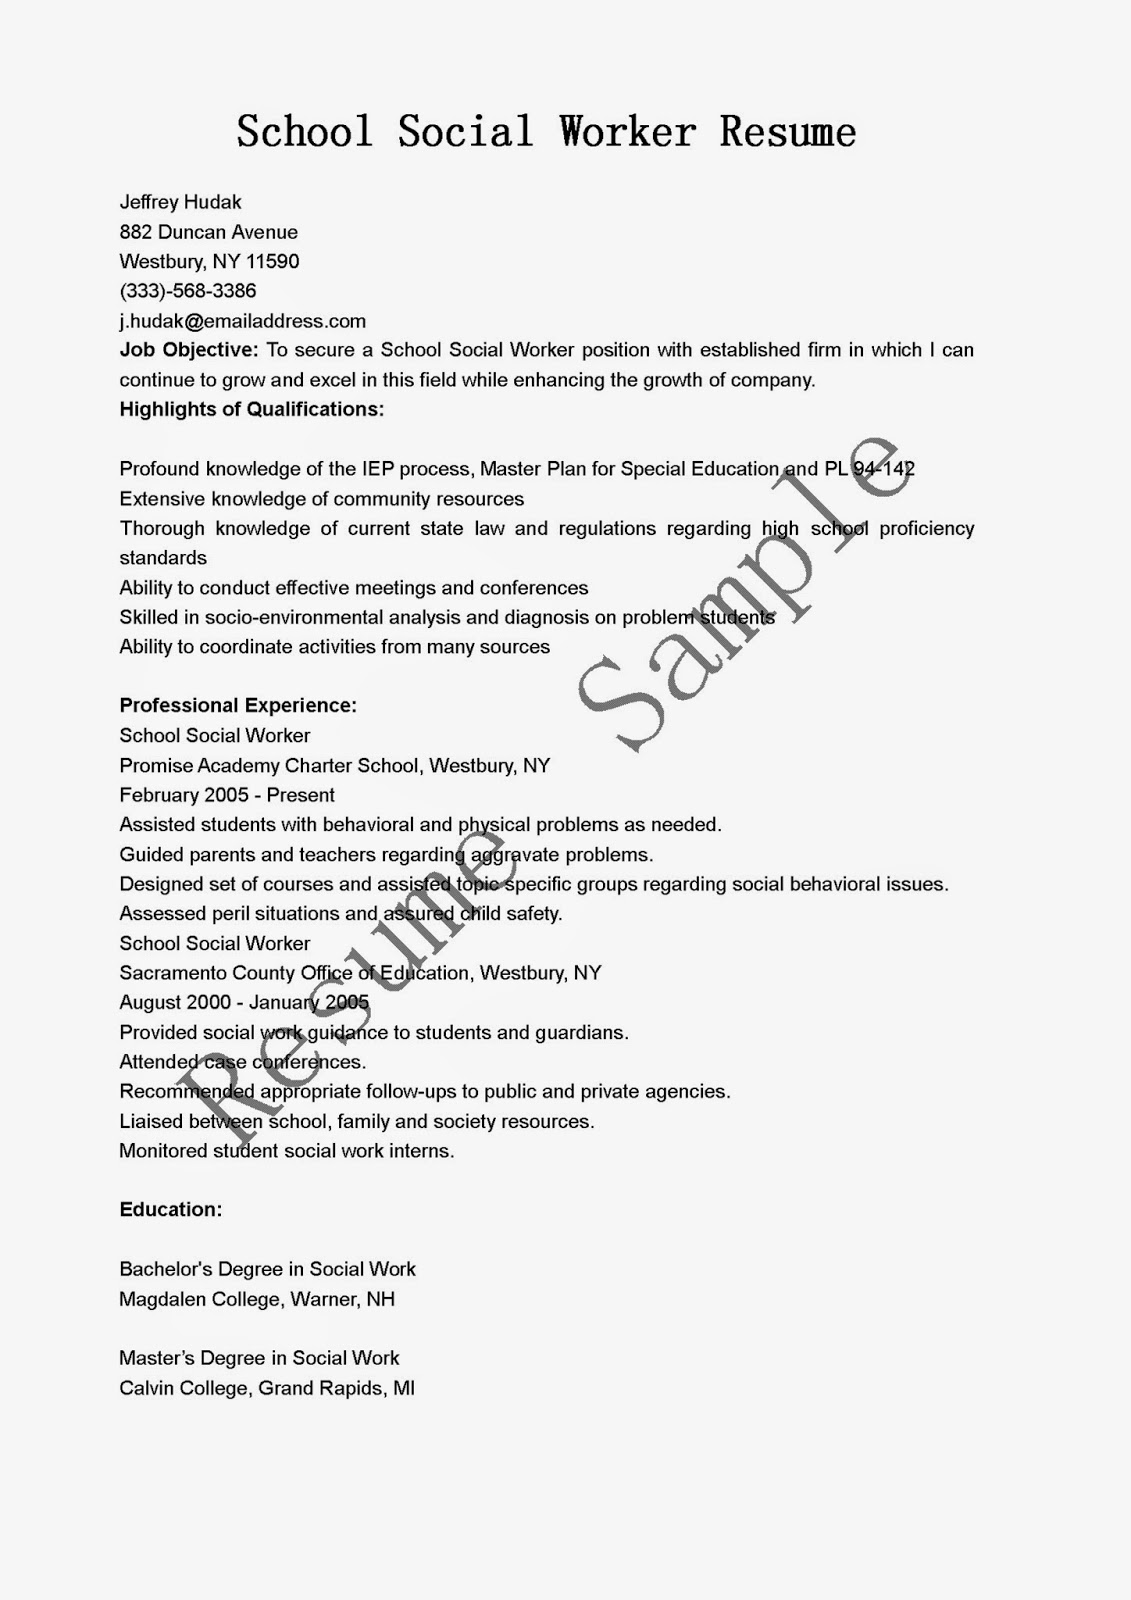 Resume Samples School Social Worker Resume Sample